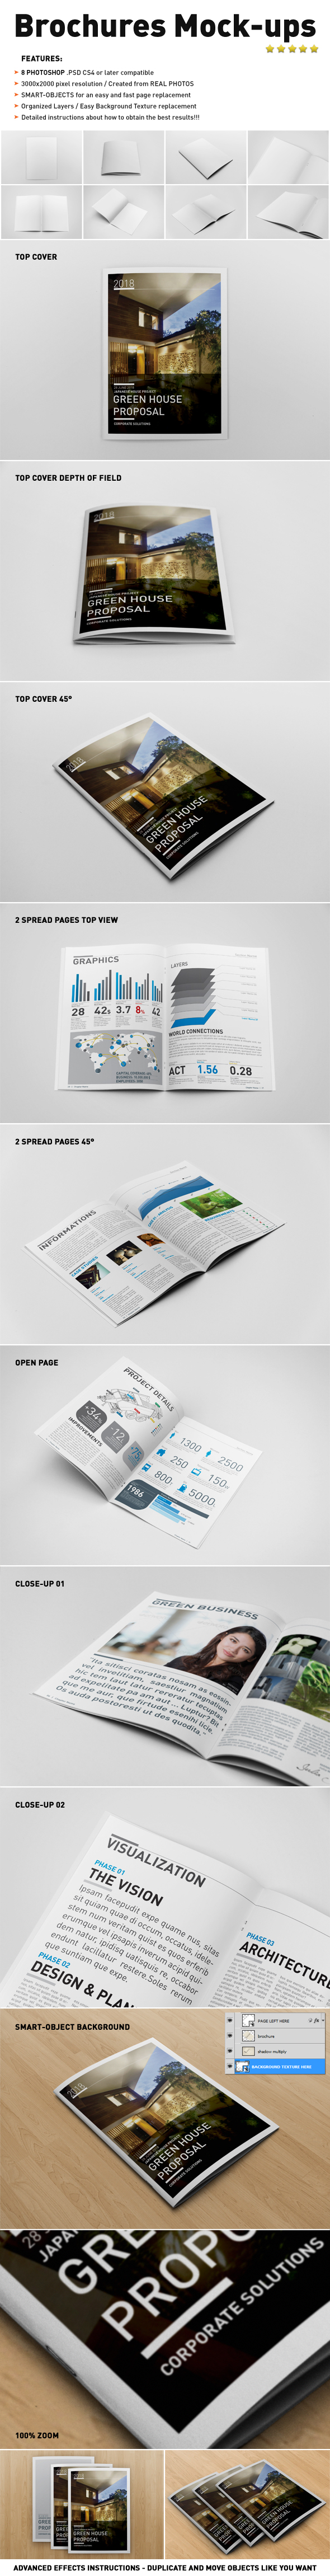 brochure mock up template - photorealistic brochure mock ups templates by andre2886 on